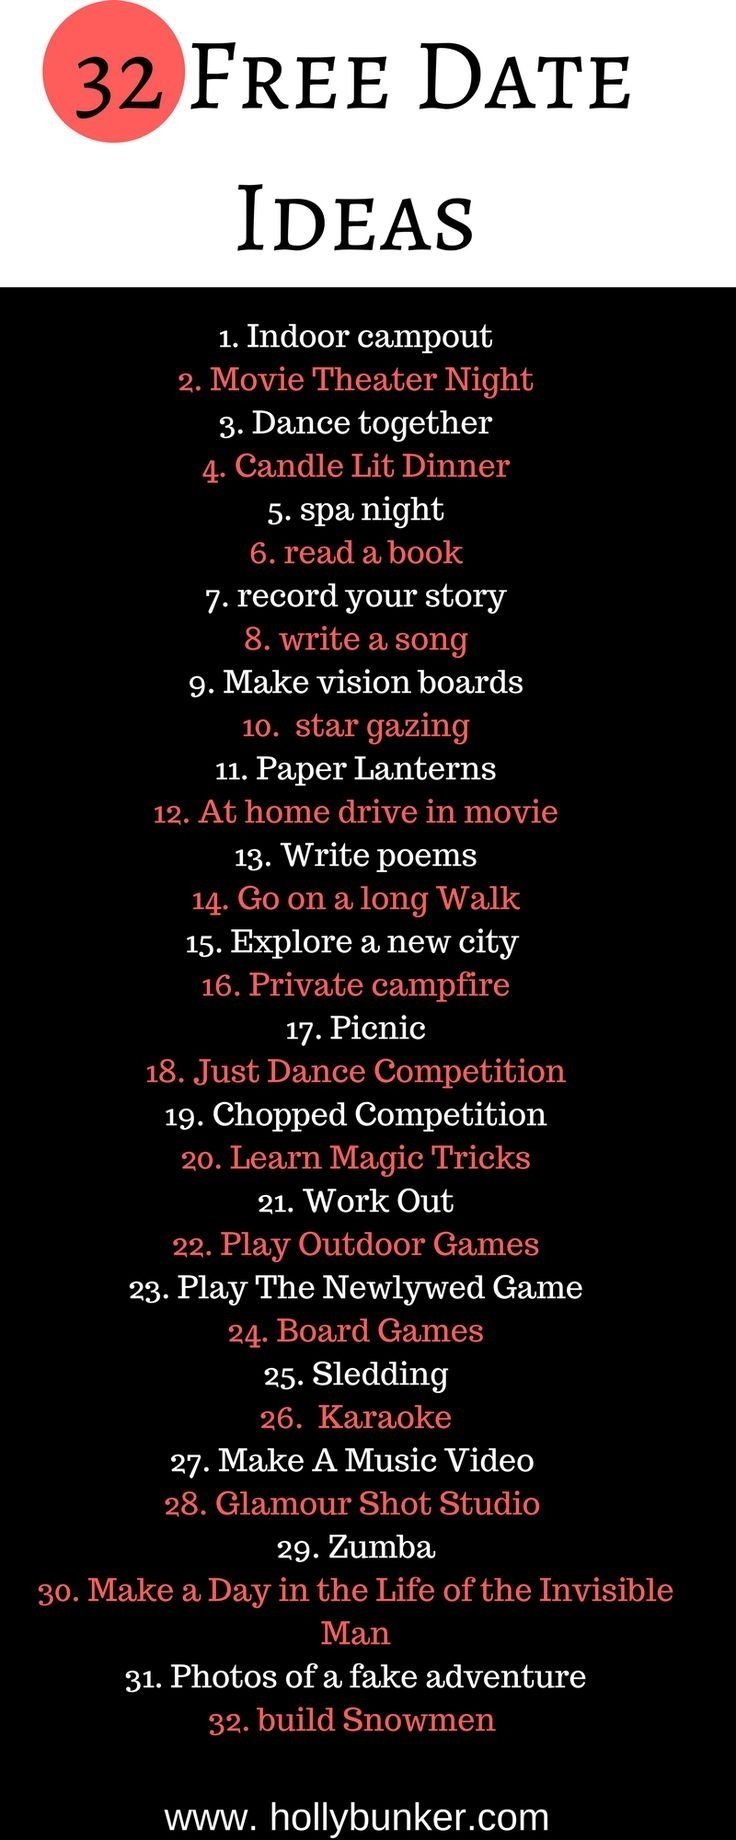 10 Famous Creative Date Ideas For Him 1279 best college relationships images on pinterest relationships 8 2020